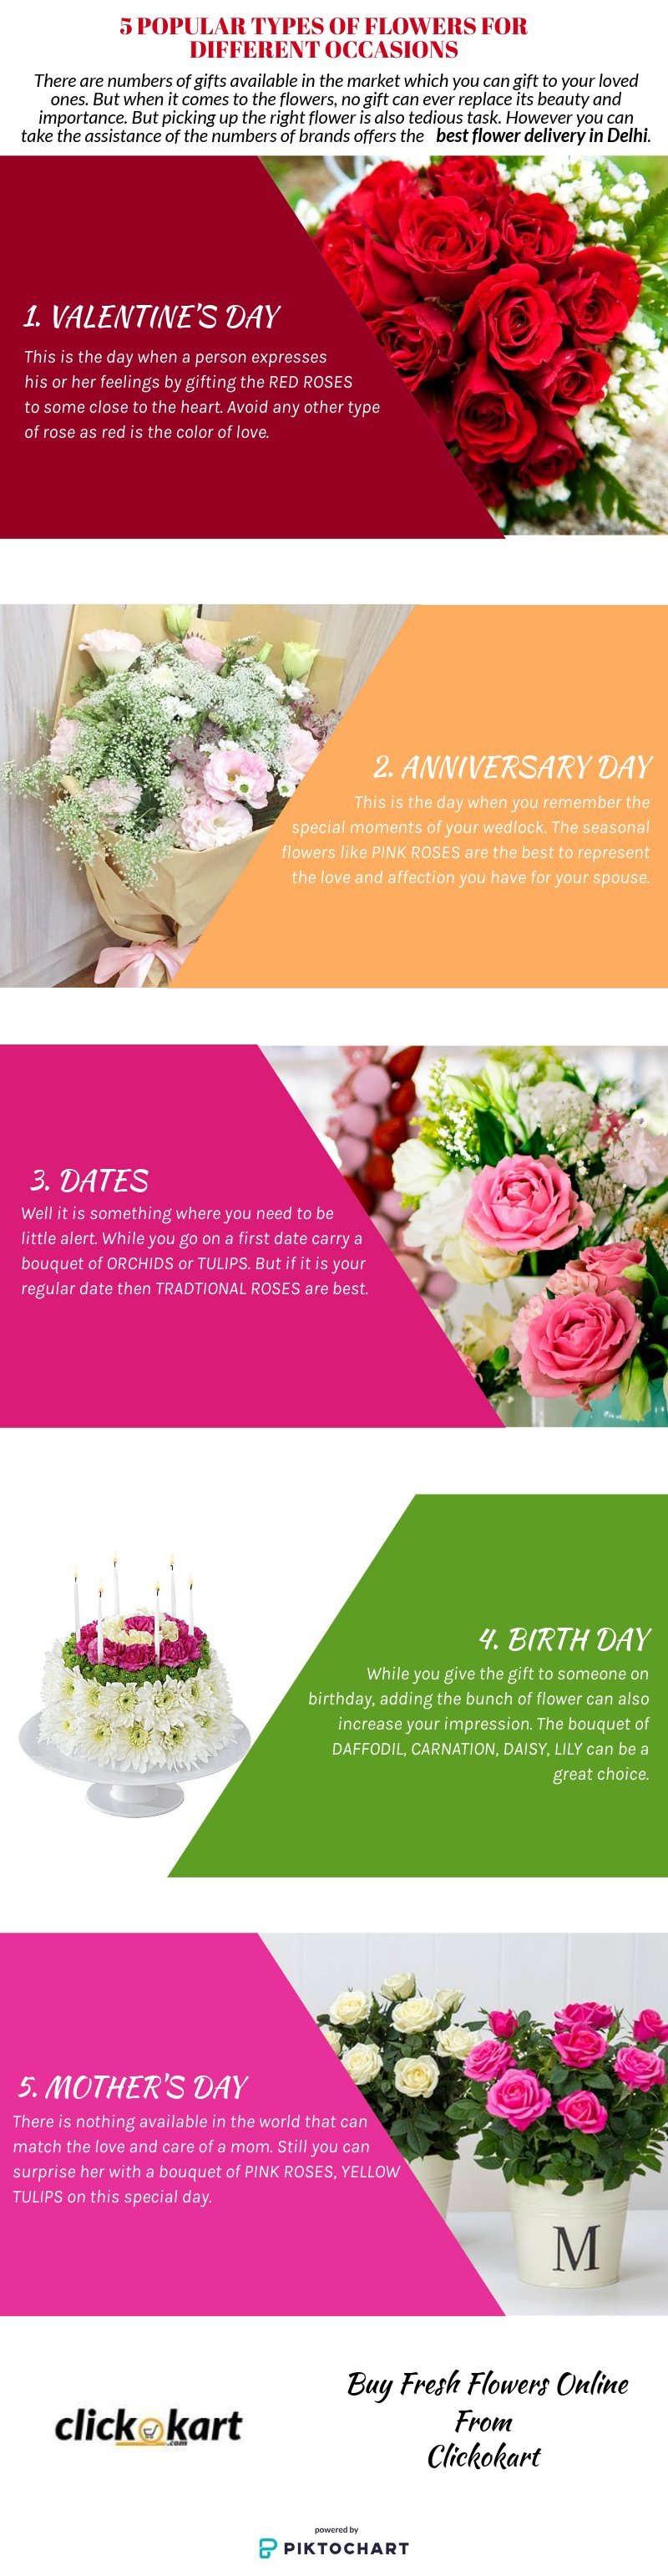 5 popular types of flowers for different occasions piktochart 5 popular types of flowers for different occasions piktochart visual editor izmirmasajfo